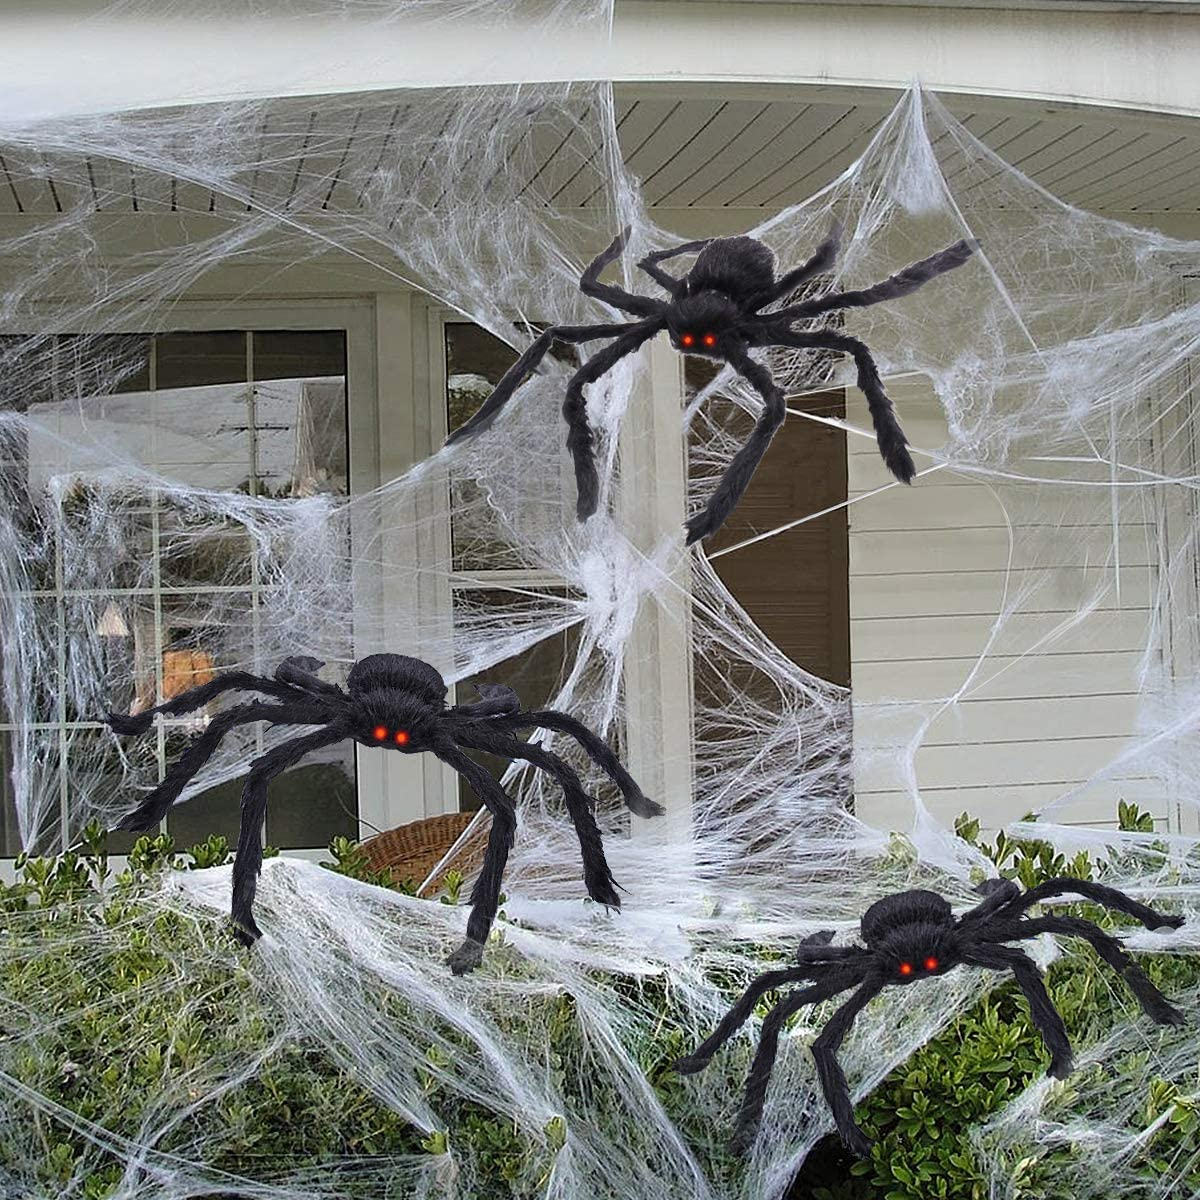 Halloween Spider Decorations for Outdoor Halloween Decorations, Indoor Haunt House Decor with Scary LED Red Eyes 75cm